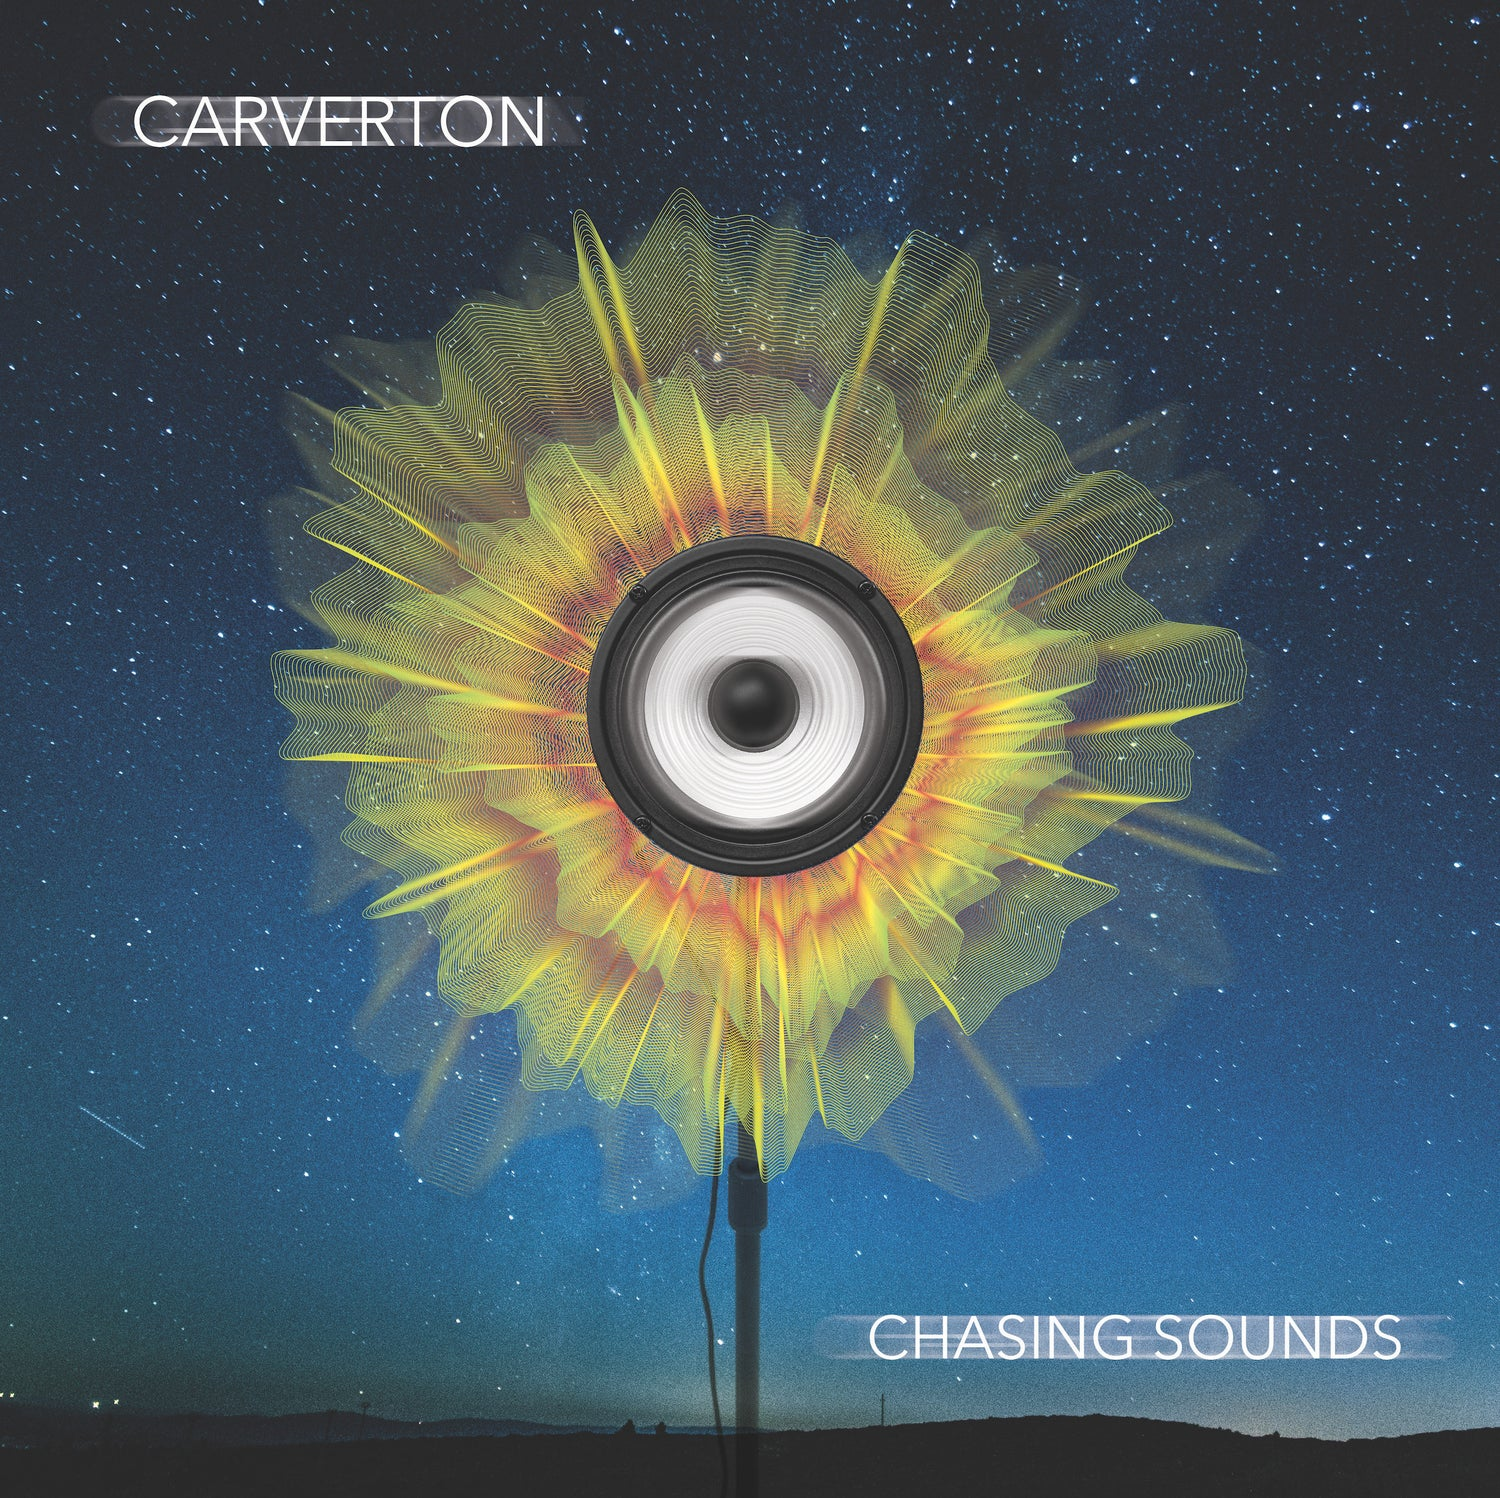 Image of Chasing Sounds Album